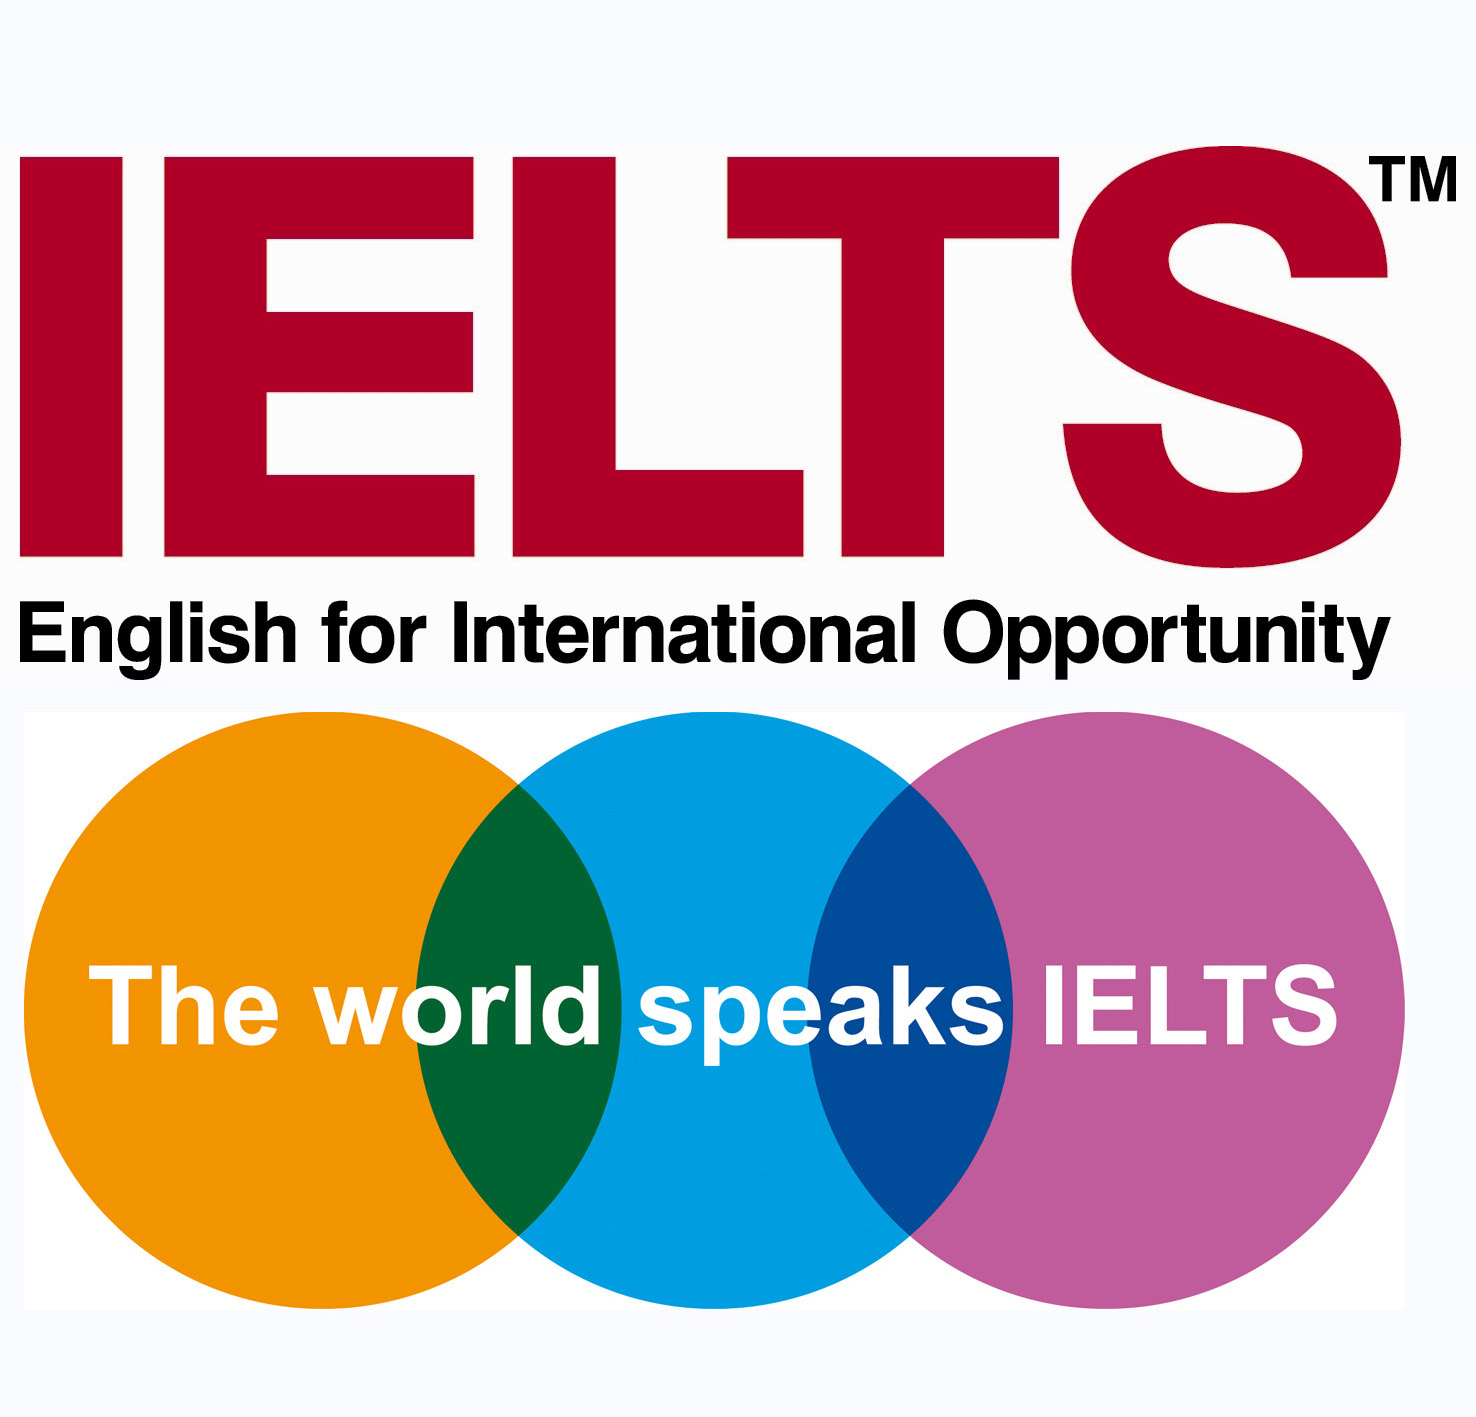 get more tips for ielts exam- get coaching from gill sir in maninagar